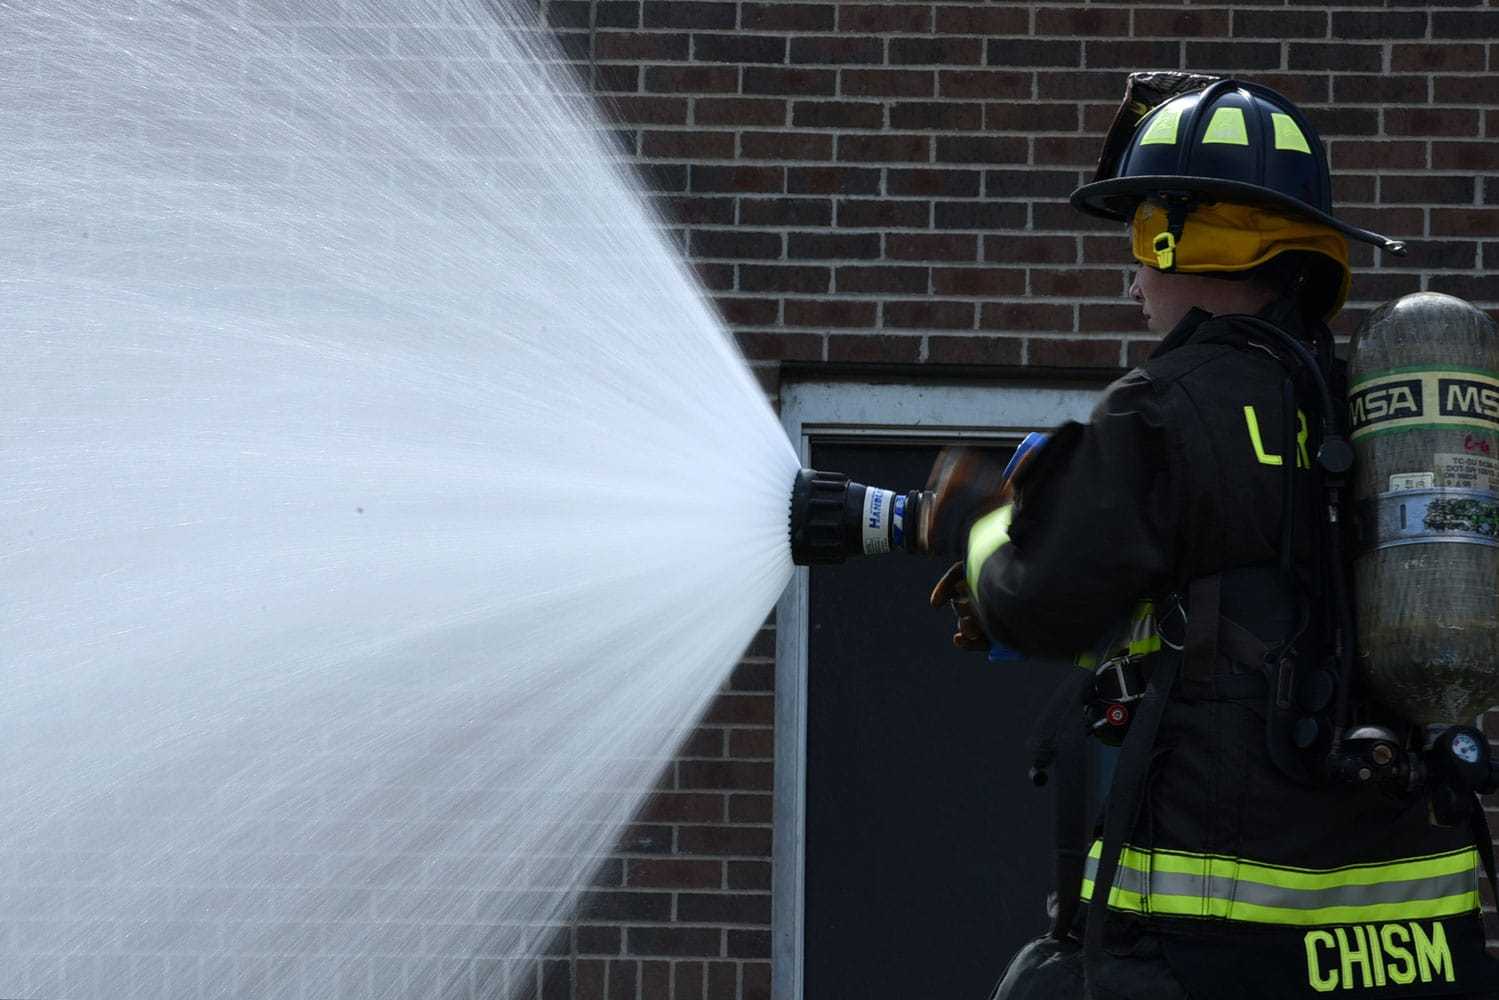 U.S. Air Force Airman Shyanne Chism firefighter apprentice, inspects a fire hose. Little Rock AFB firefighters train regularly to ensure they are prepared to respond to any emergency.